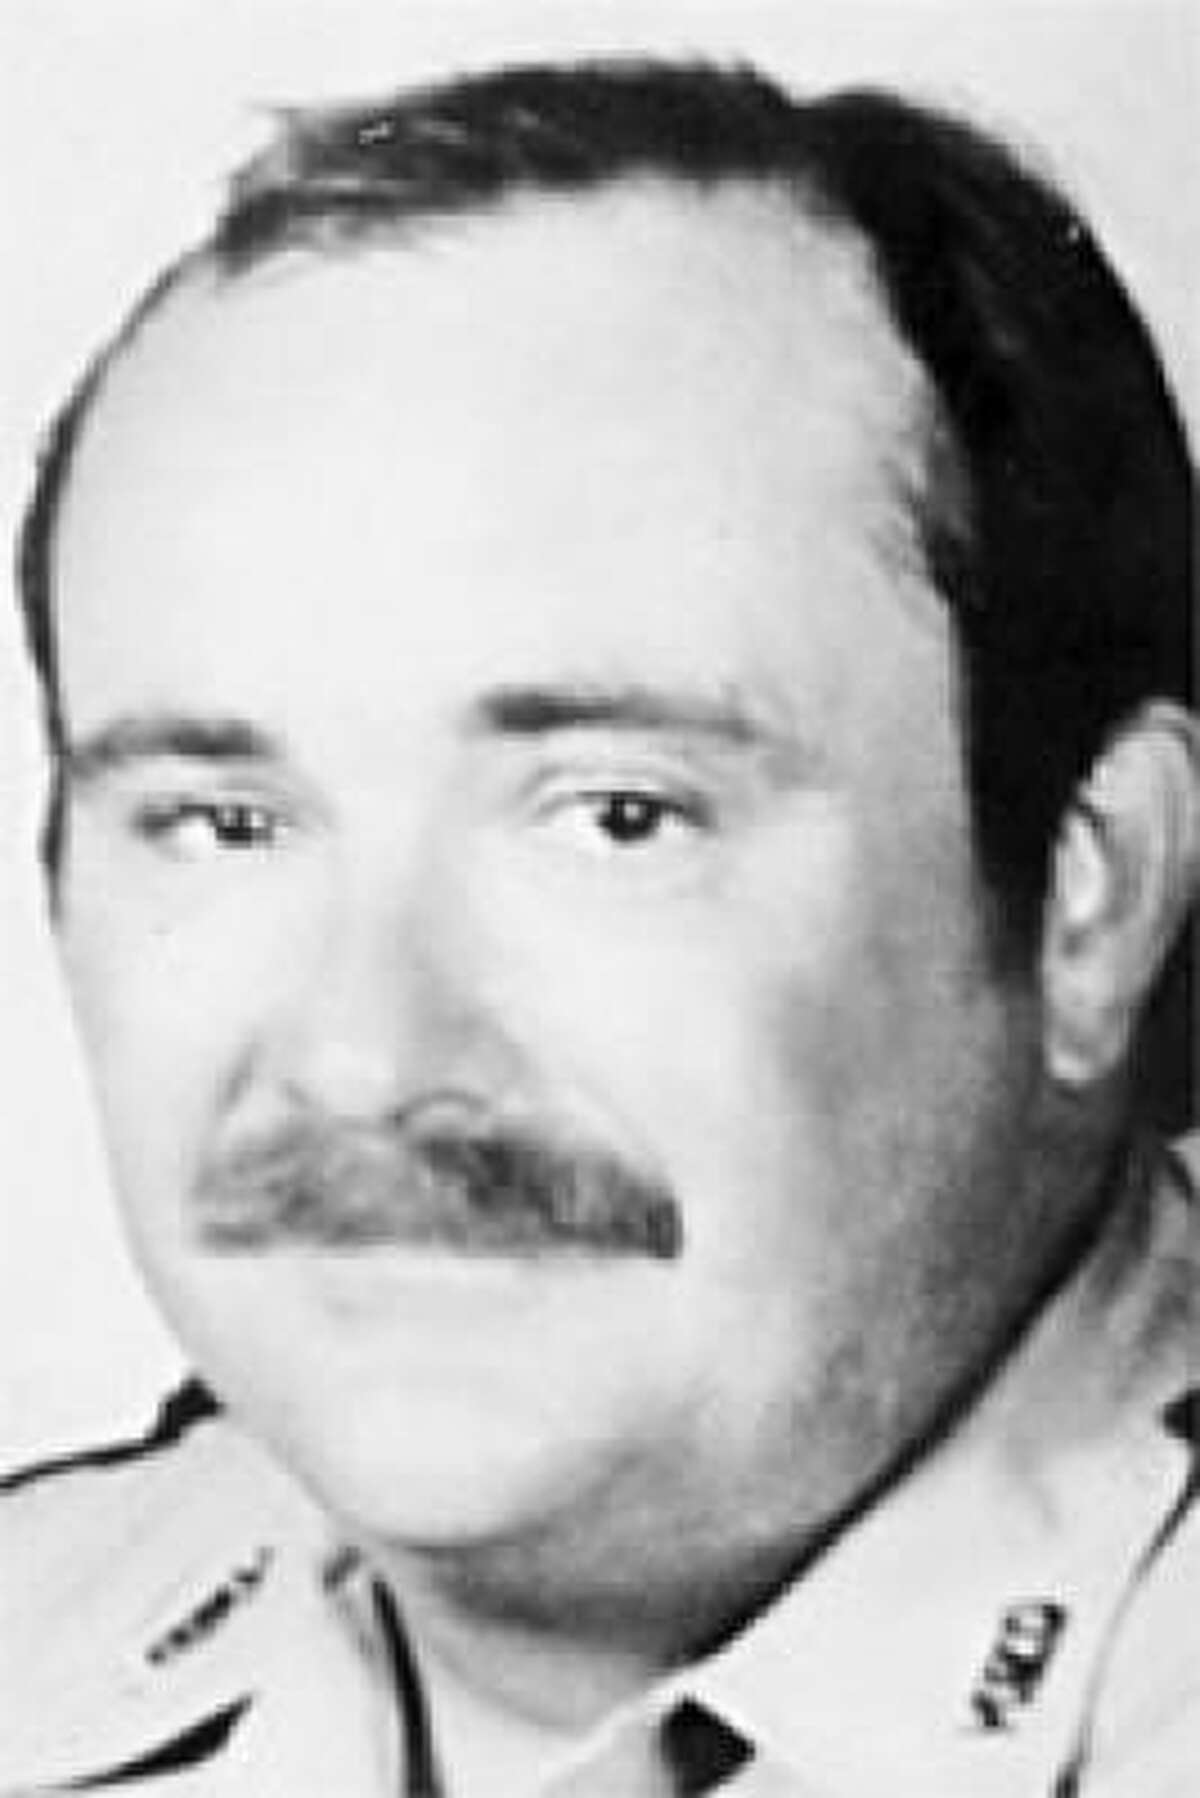 Houston police officer James Irby, a motorcycle patrolman, was shot to death June 27, 1990, when he stopped a car for a minor traffic infraction near Airline and Interstate 45.